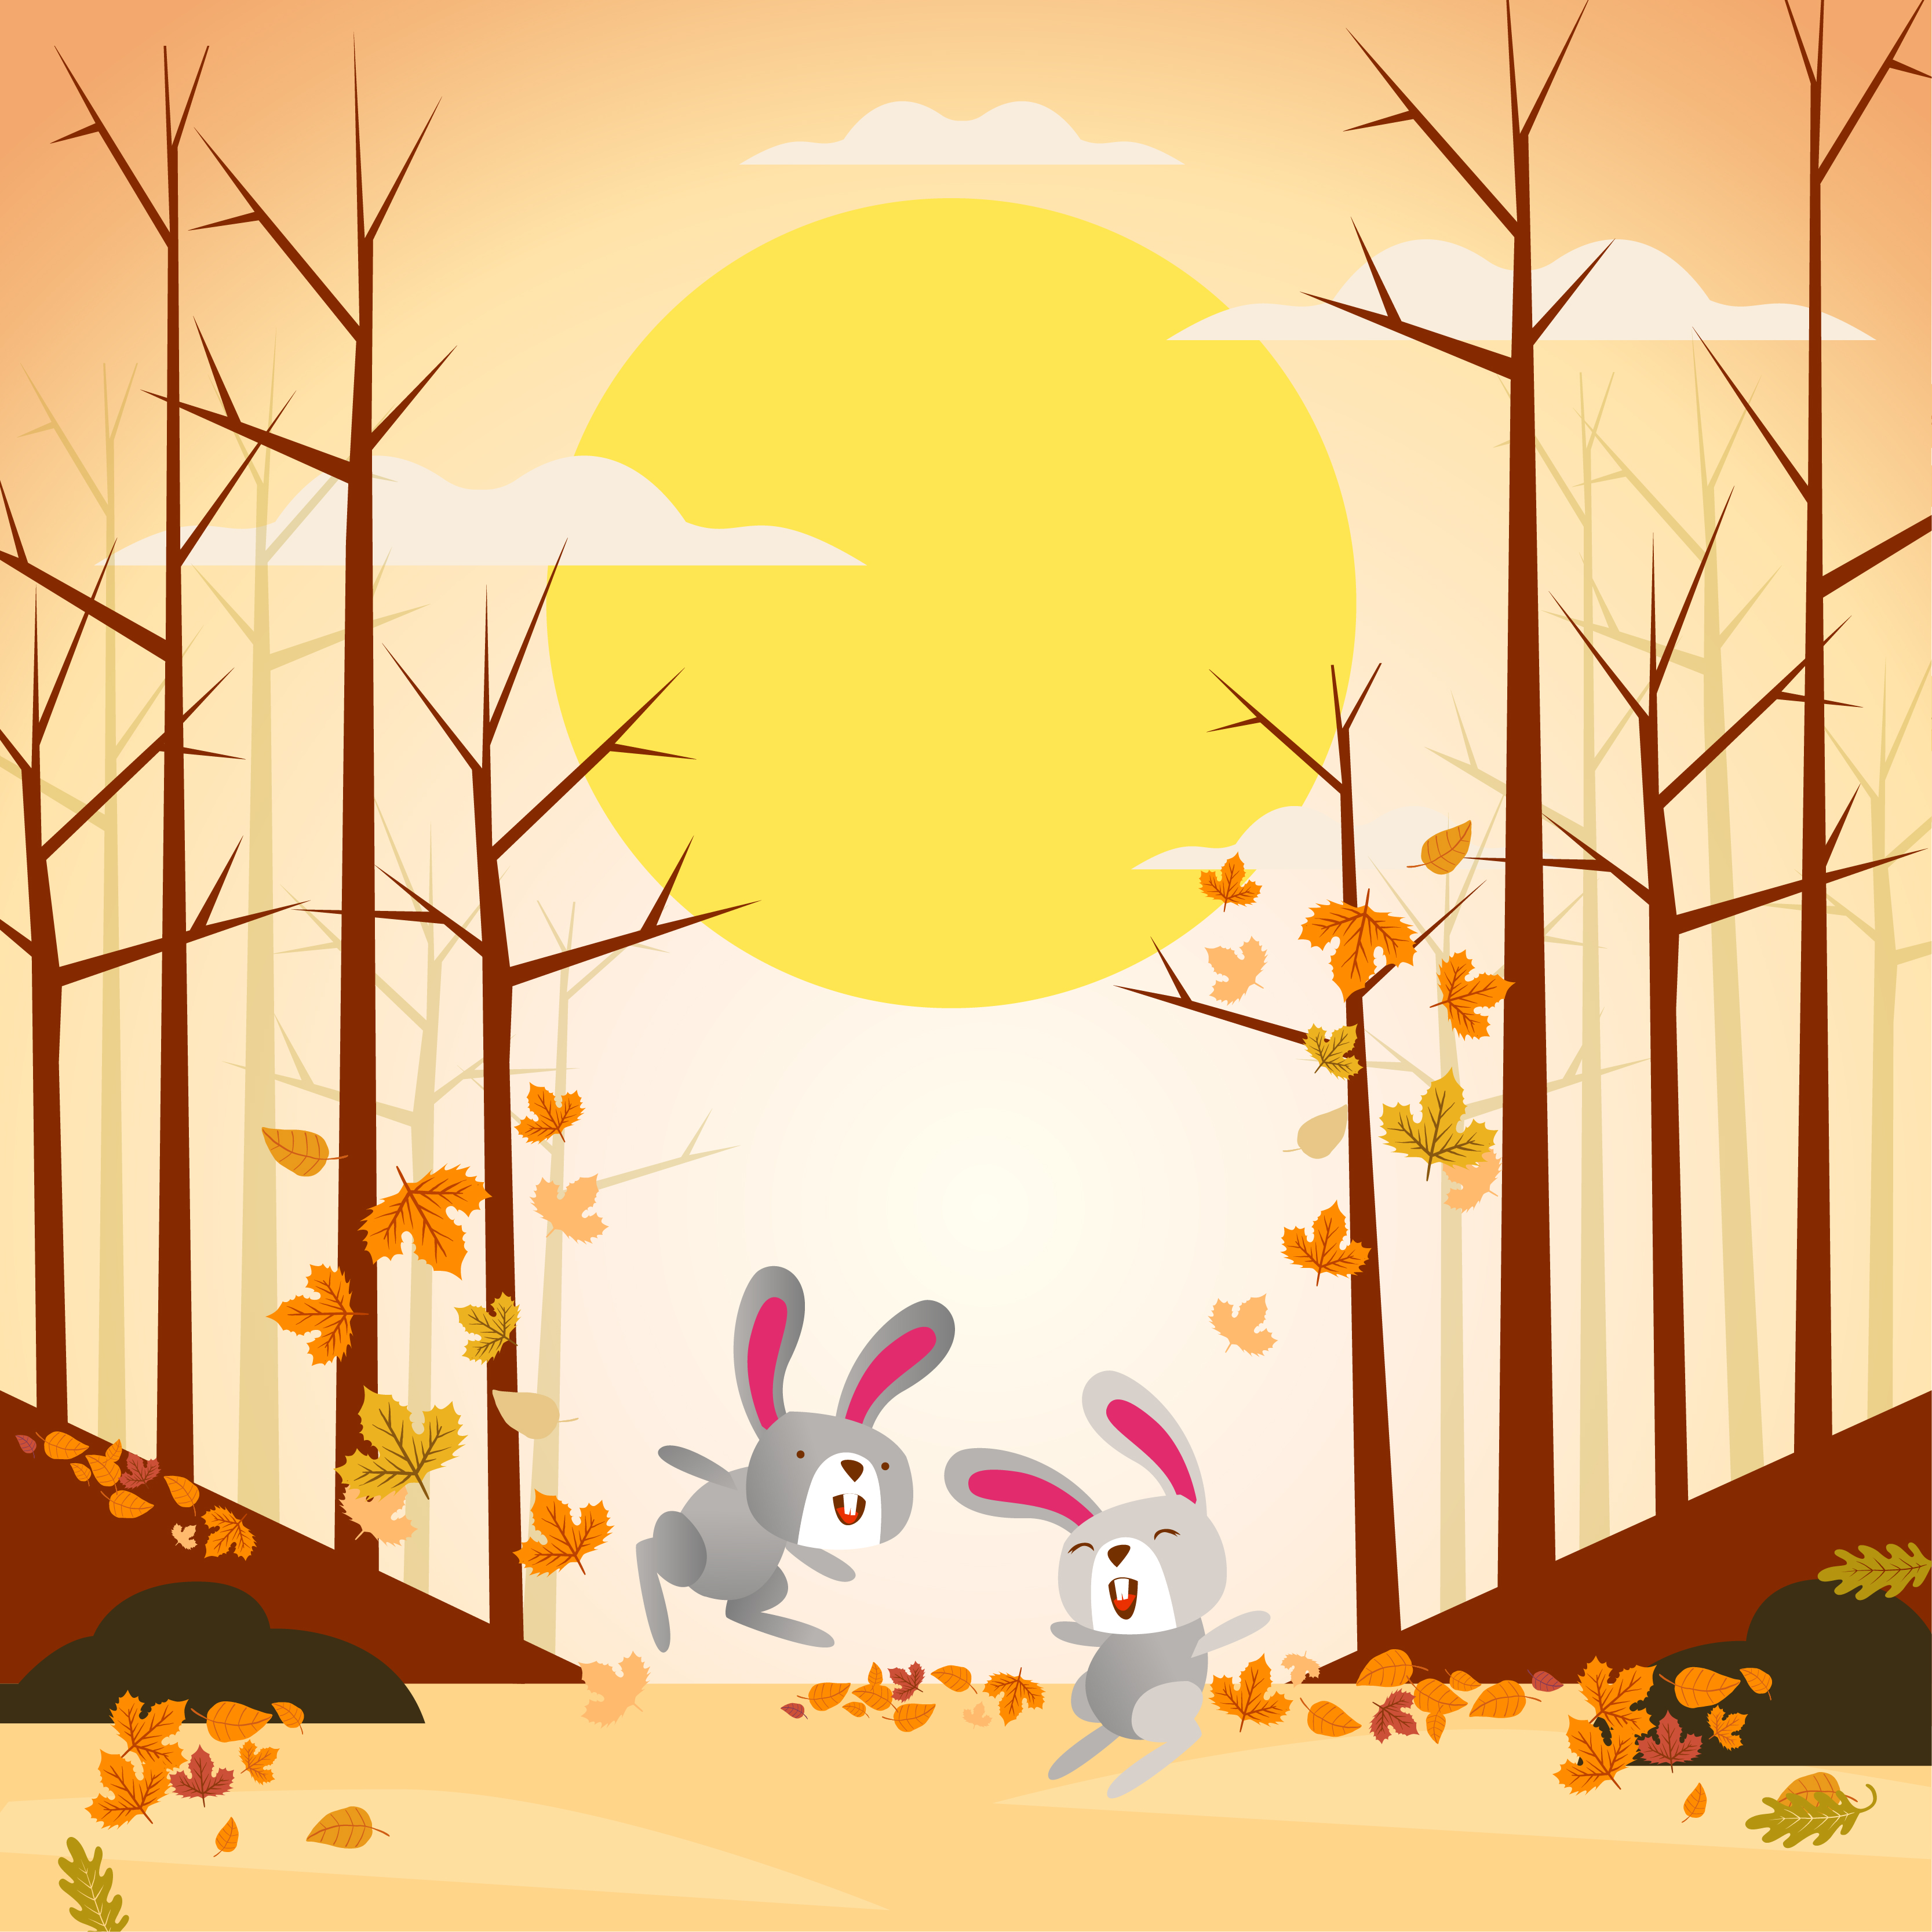 Illustration Of Two Cute And Funny Rabbits Playing In Autumn Fall Season Download Free Vectors Clipart Graphics Vector Art